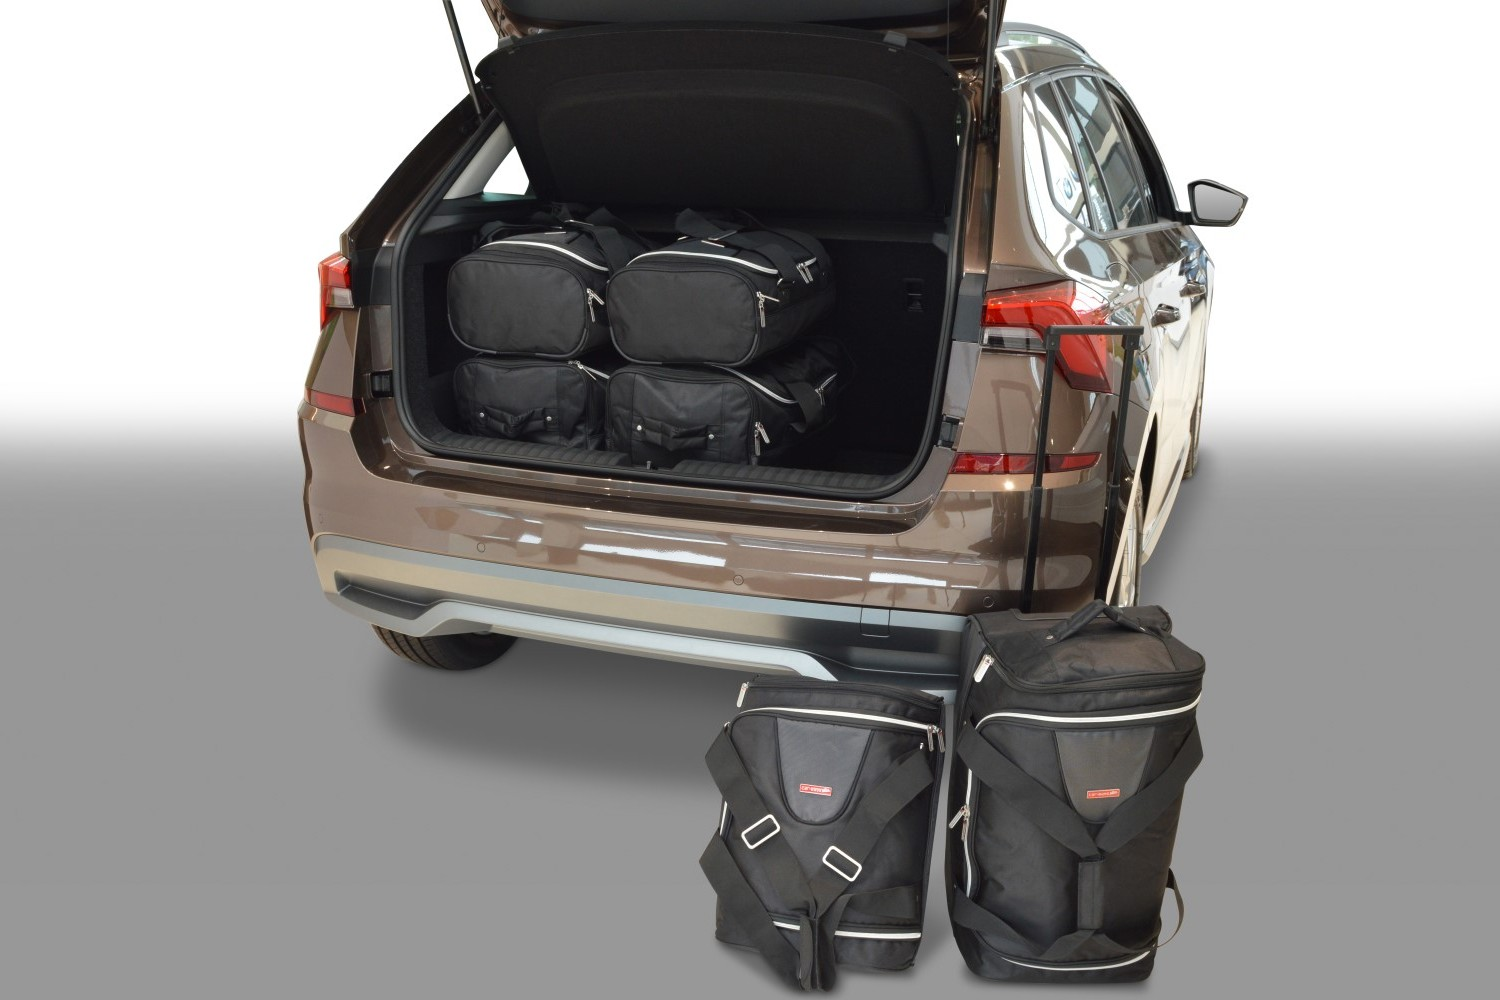 Skoda Kamiq 2019- Car-Bags.com travel bag set (1)